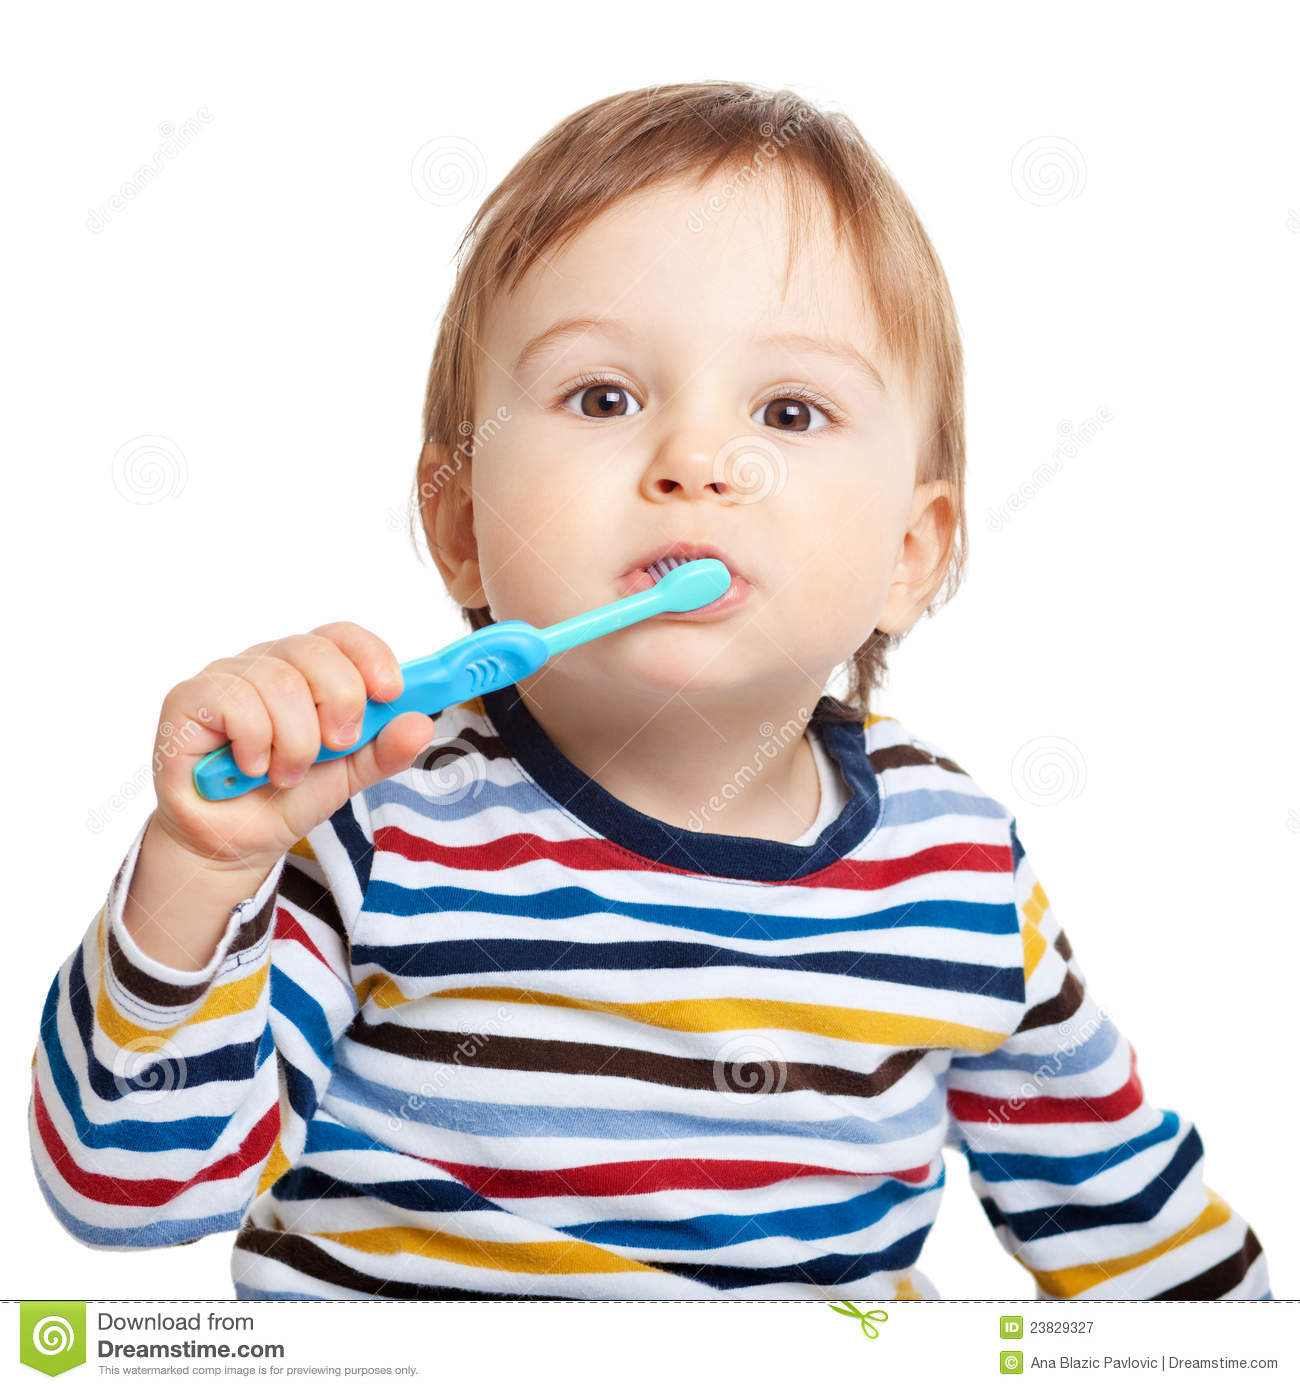 Brush Your Teeth Everyday Royalty Free Stock Photography - Image ...